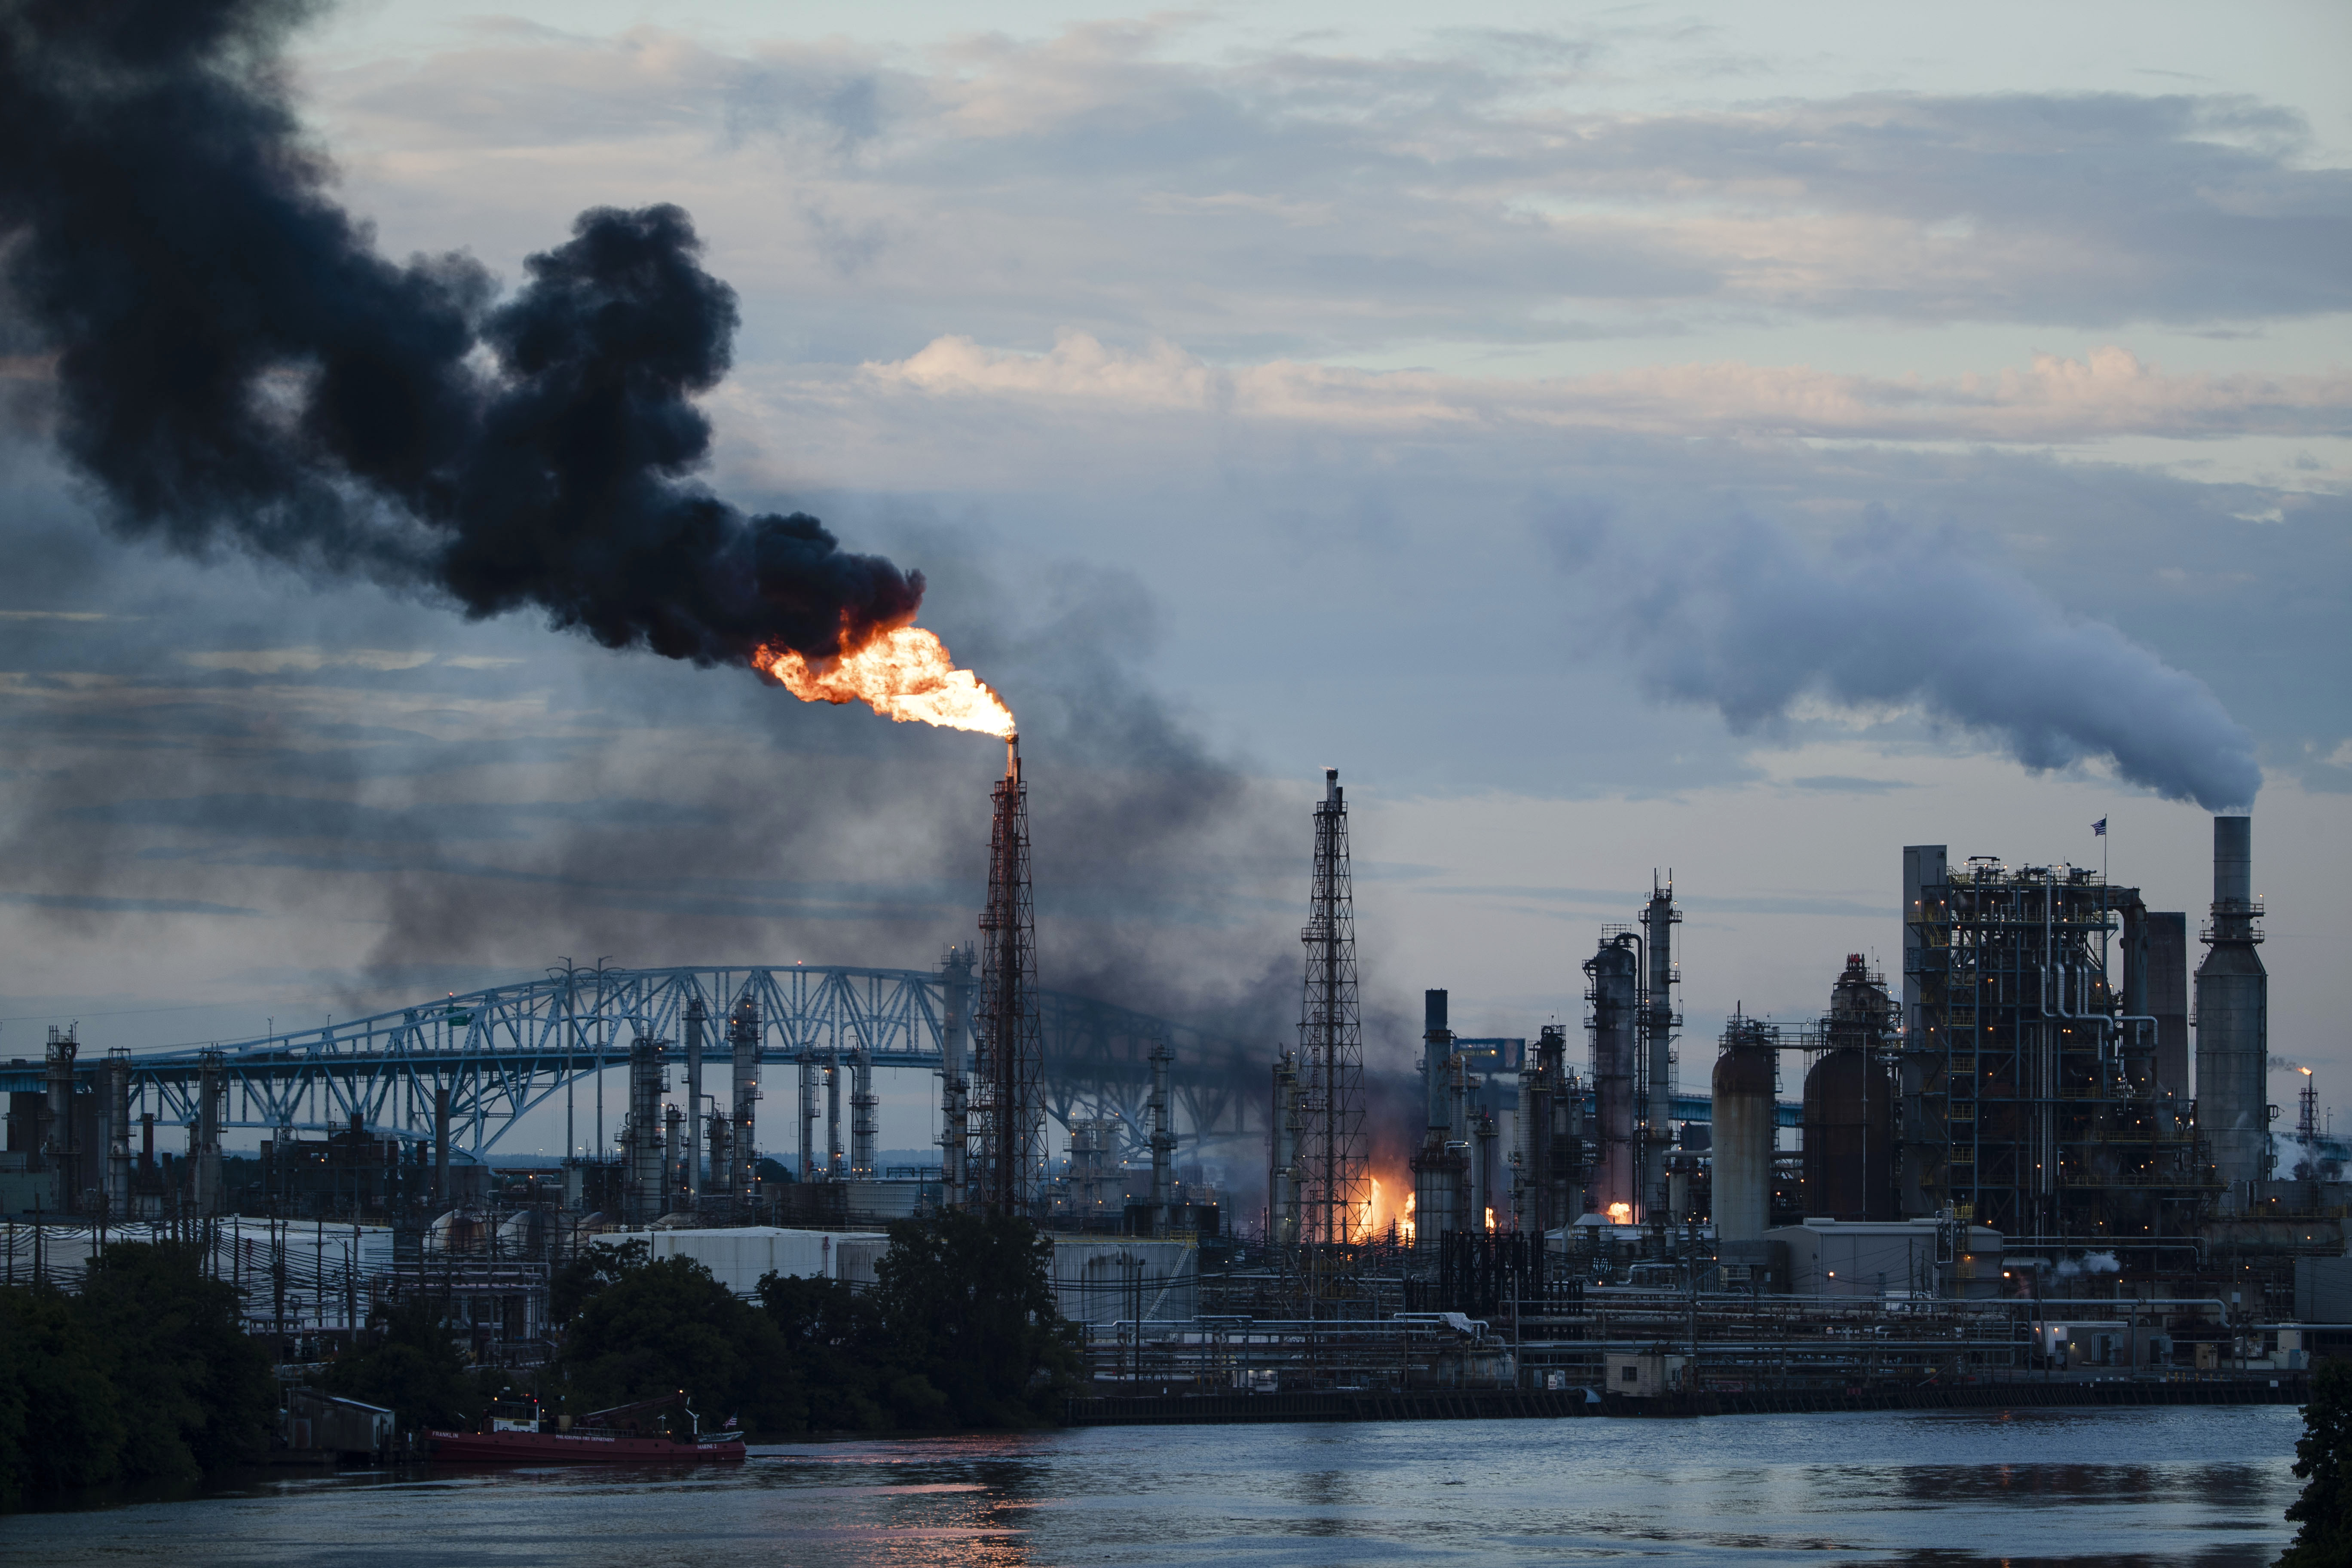 PES to permanently shut down oil refinery after explosion, mayor says